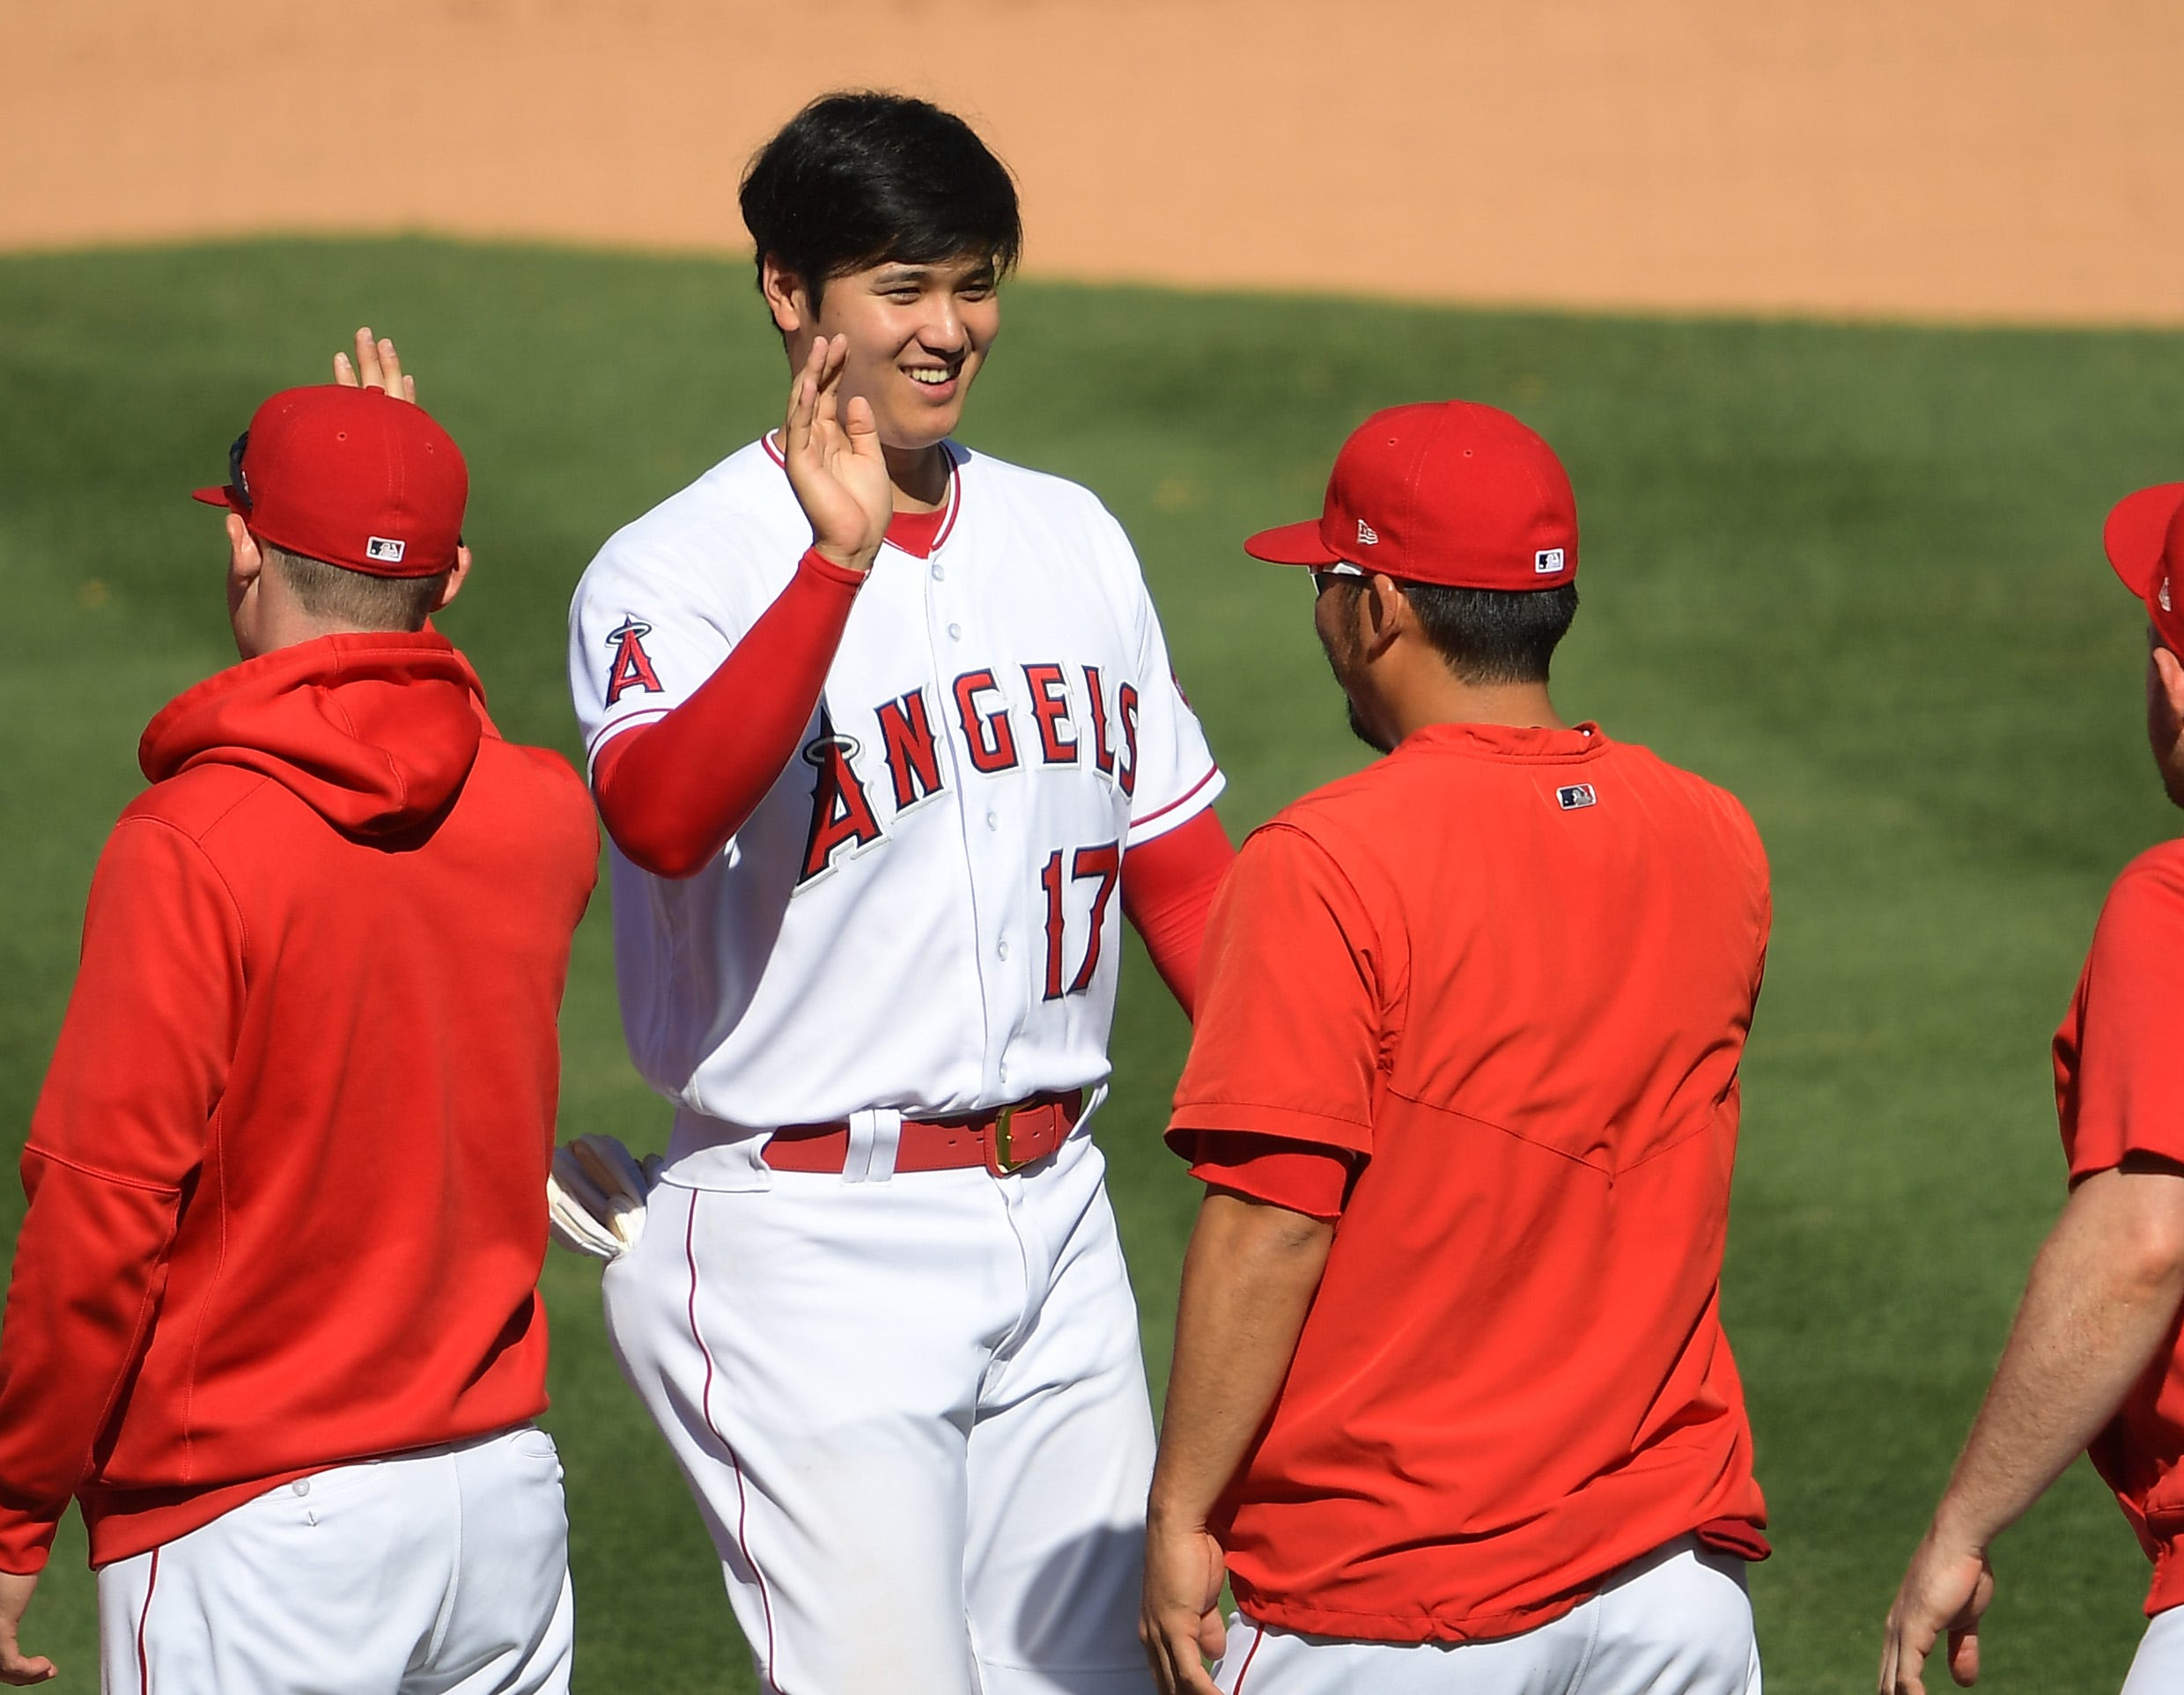 Shohei Ohtani scratched from start, not because of an injury but transportation issues